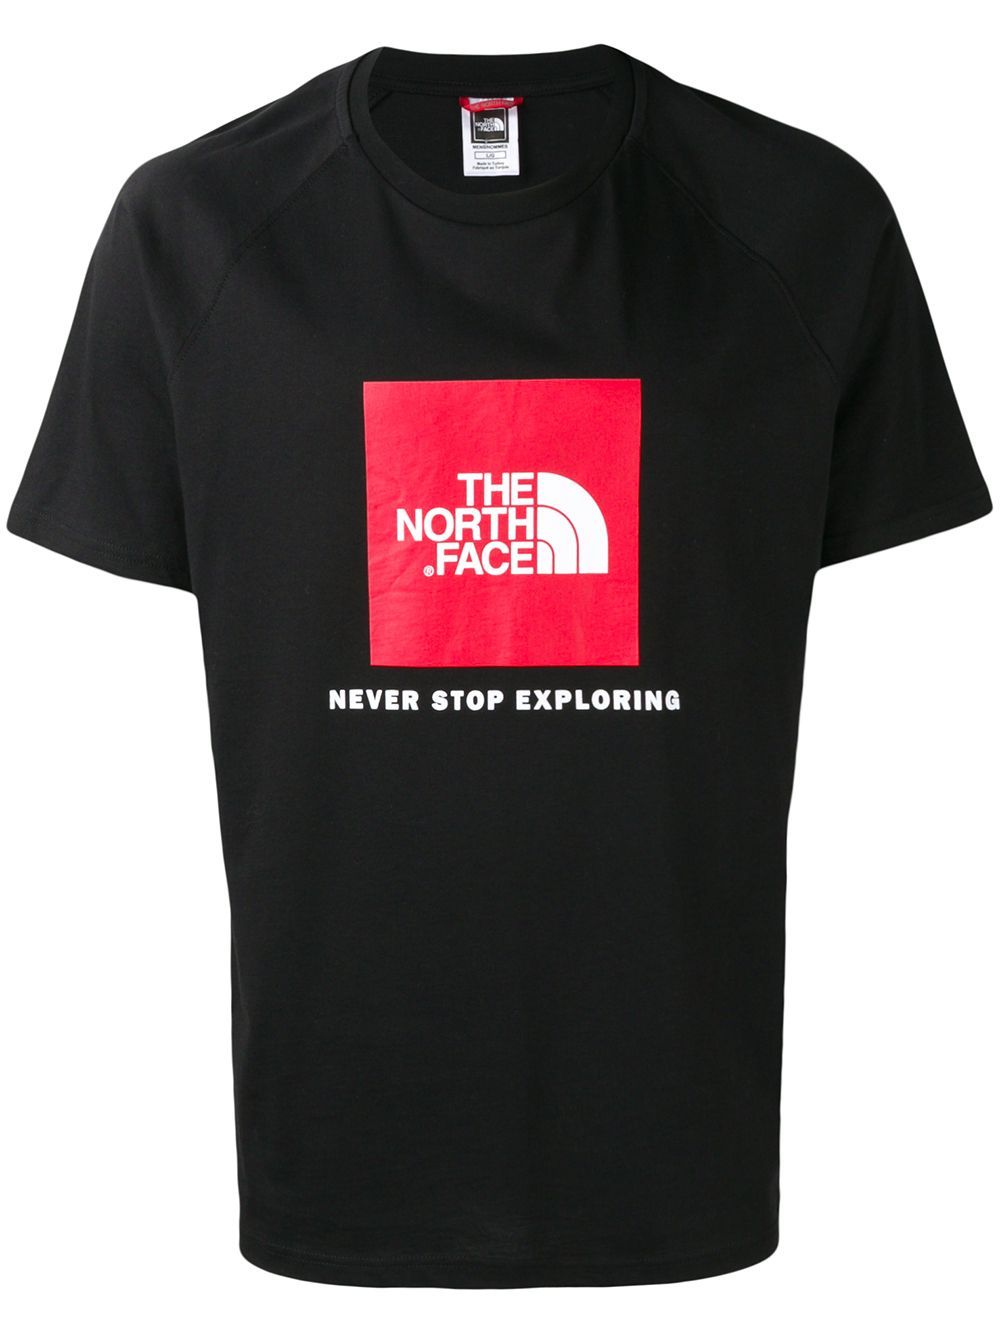 e4d420b02 THE NORTH FACE THE NORTH FACE LOGO PRINTED T-SHIRT - BLACK ...